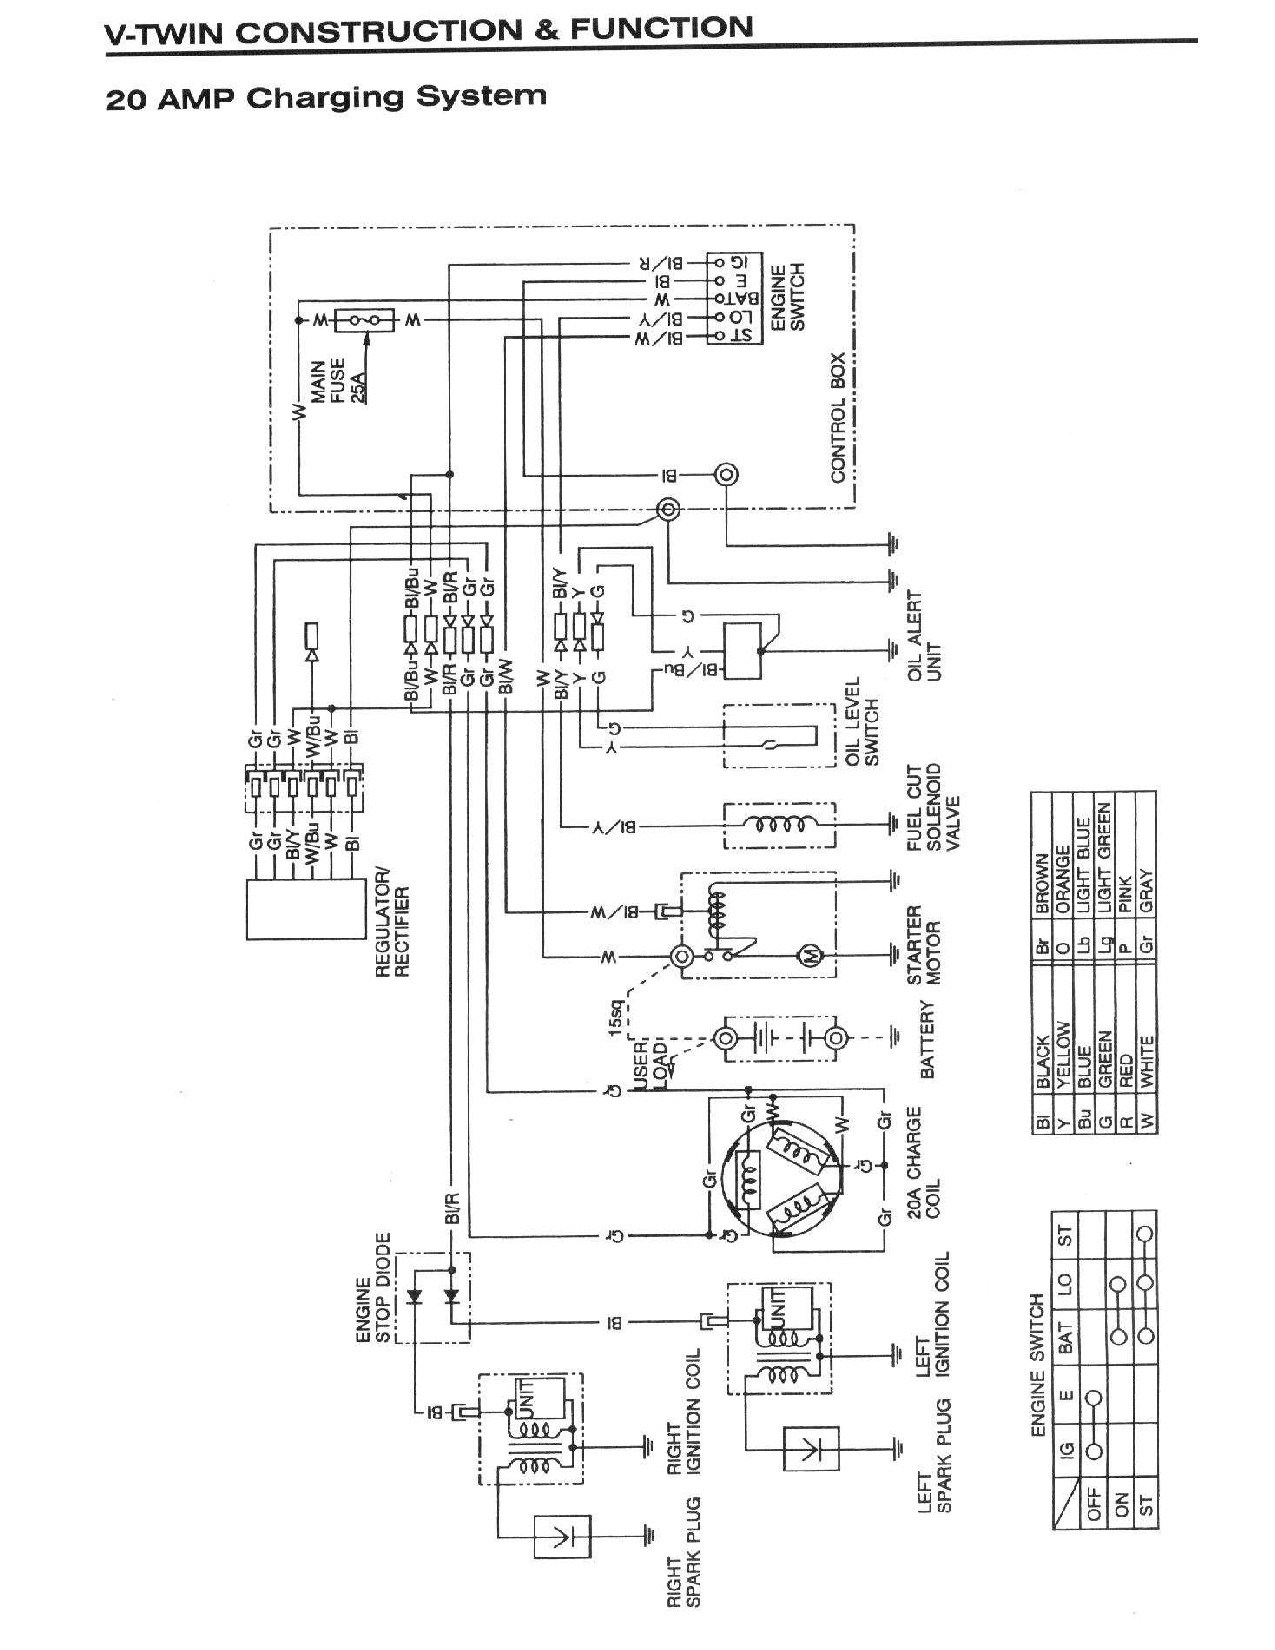 Honda Gx620 Electric Wiring | Wiring Diagram - Honda Gx390 Wiring Diagram